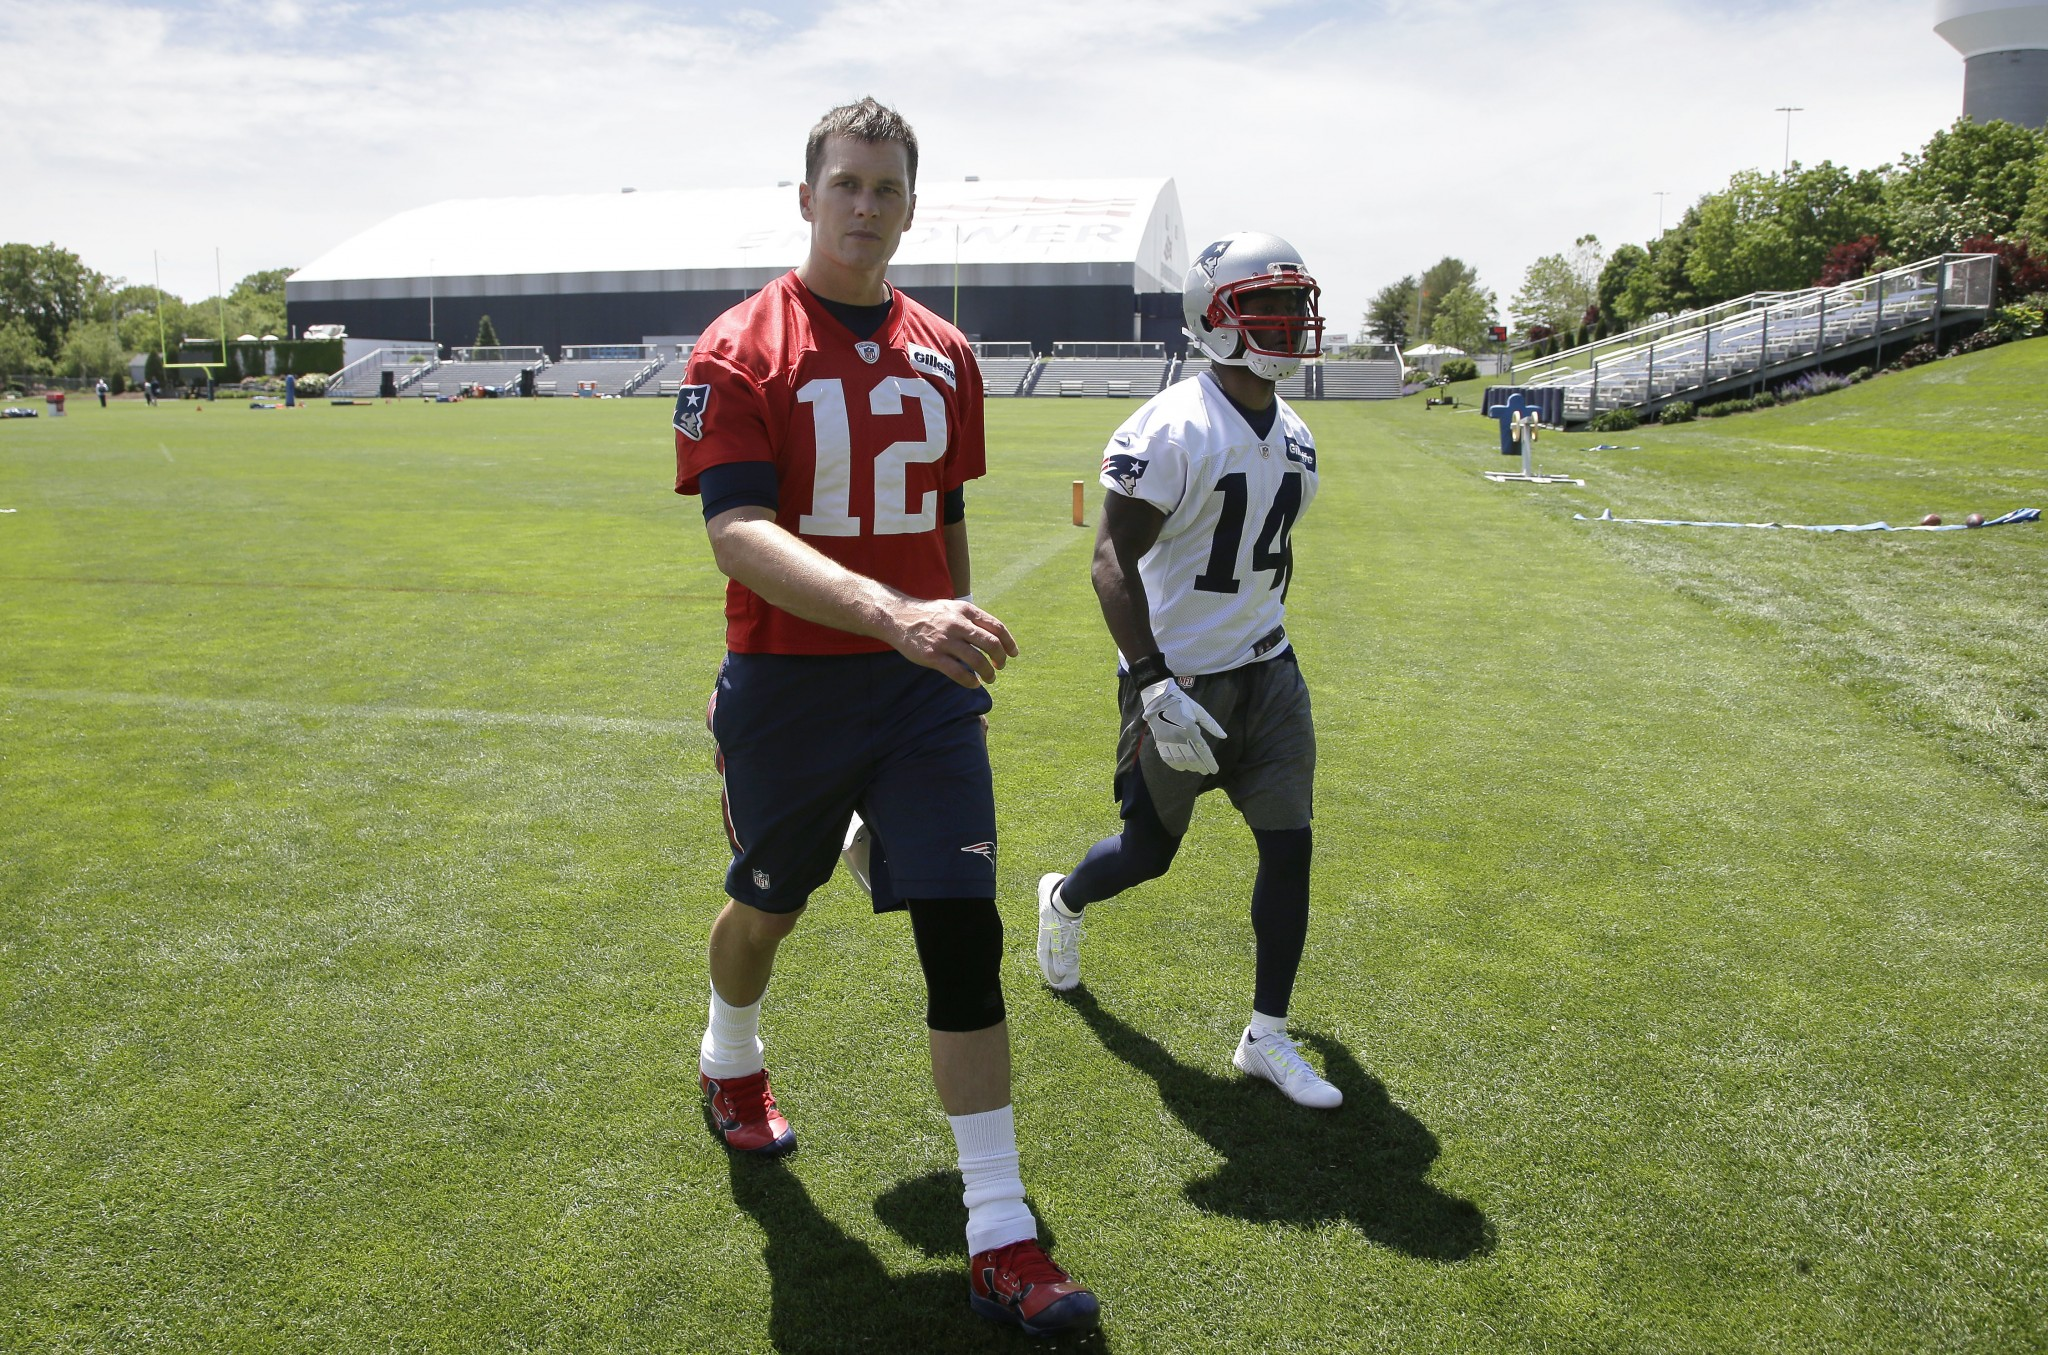 Summer chemistry class: new Patriots WR Brandin Cooks (right) has to learn how to work well with Tom Brady. (AP)